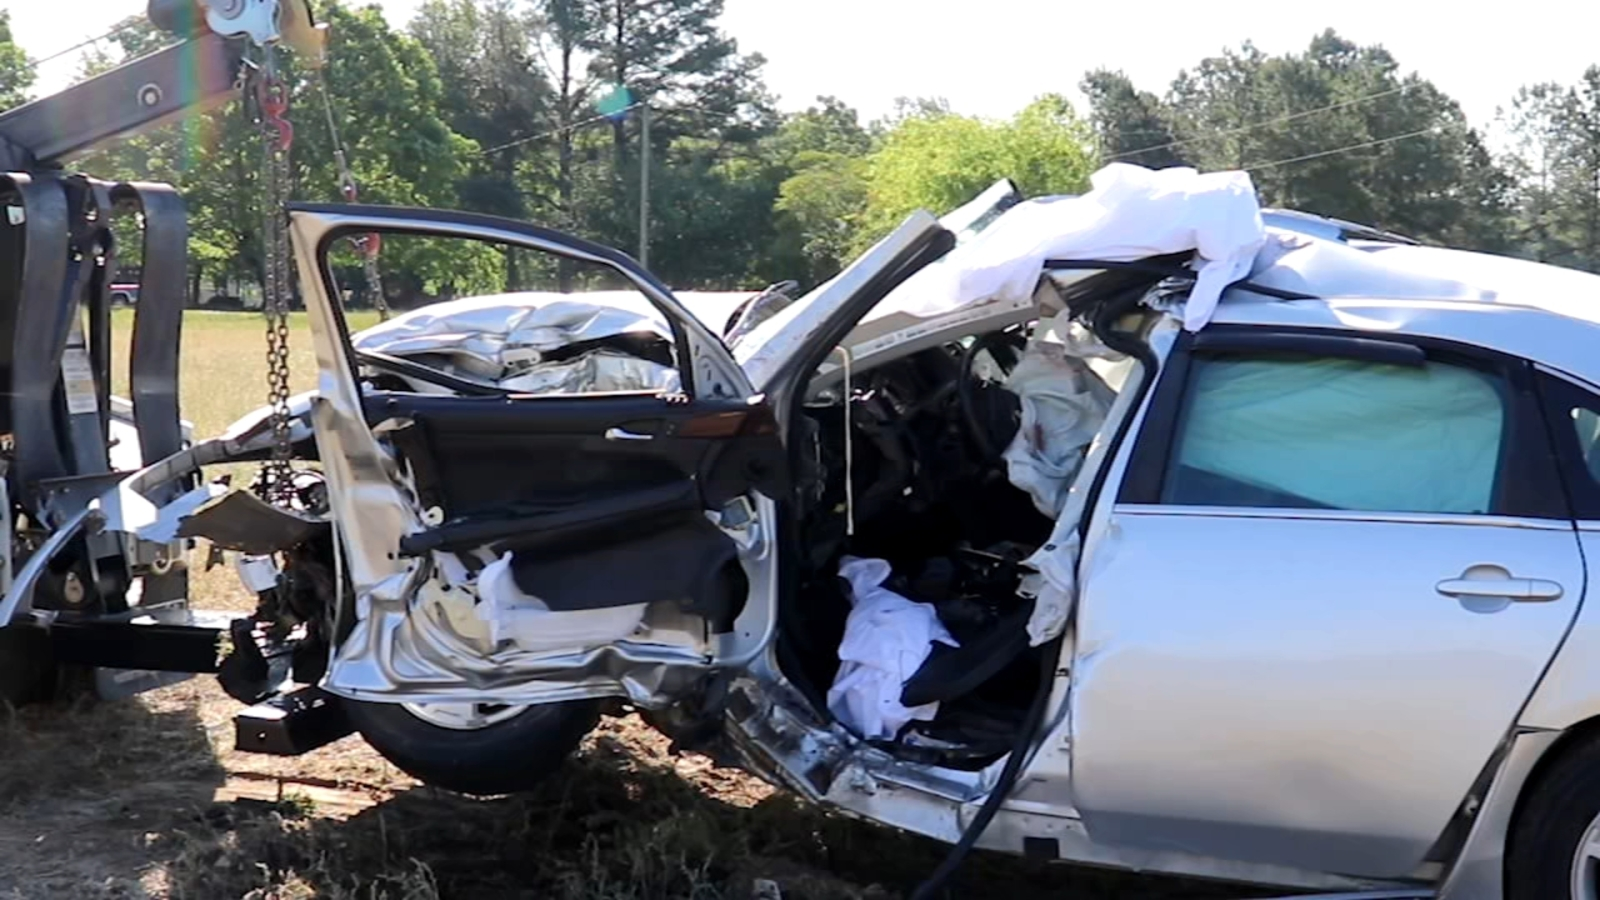 2 Killed In Crash On Nc 55 In Harnett County Between Dunn